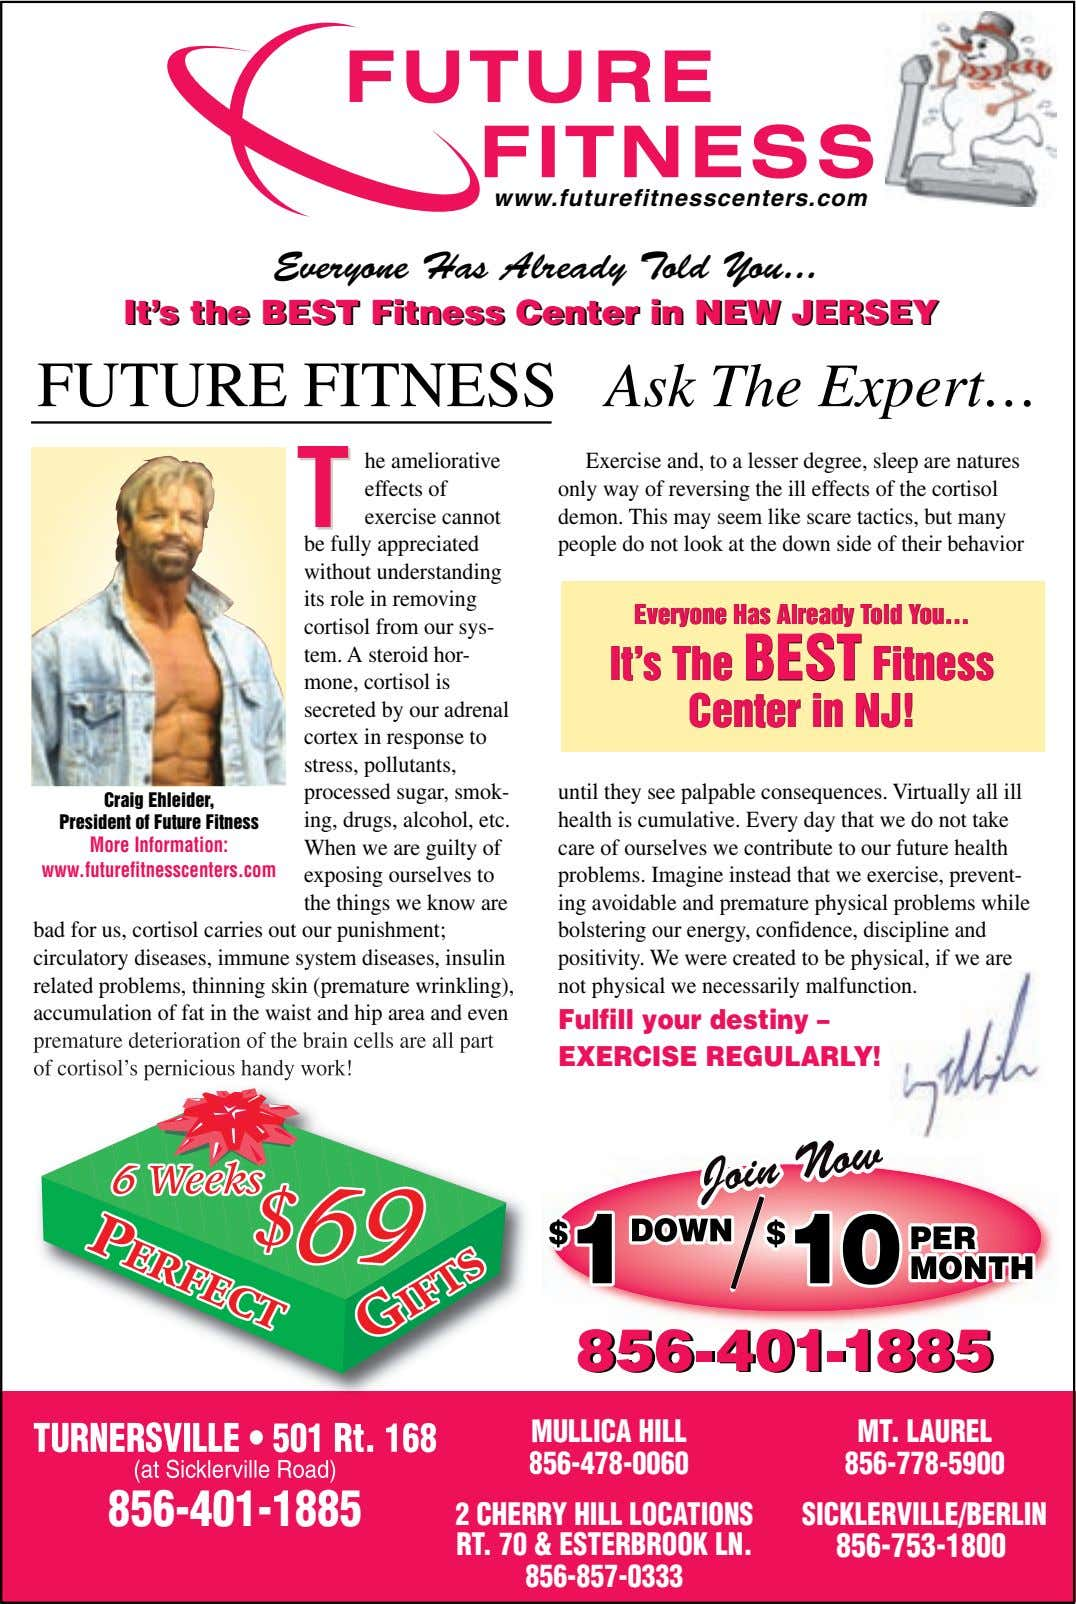 www.futurefitnesscenters.com Everyone Has Already Told You ... It's It's the the BEST BEST Fitness Fitness Center